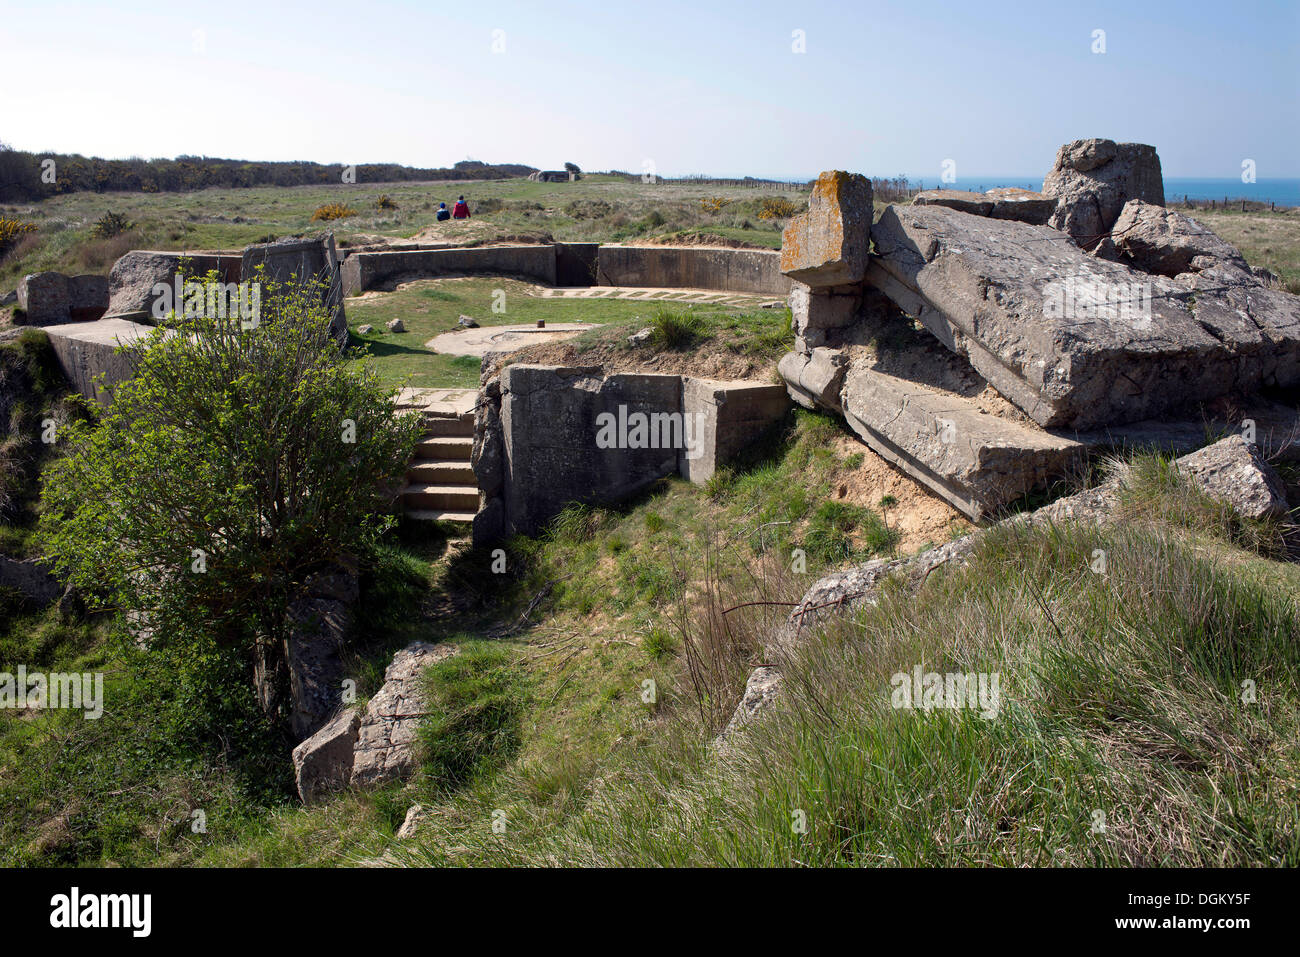 Destroyed bunker at the Pointe du Hoc memorial, Omaha Beach, Lower Normandy, France, Europe - Stock Image